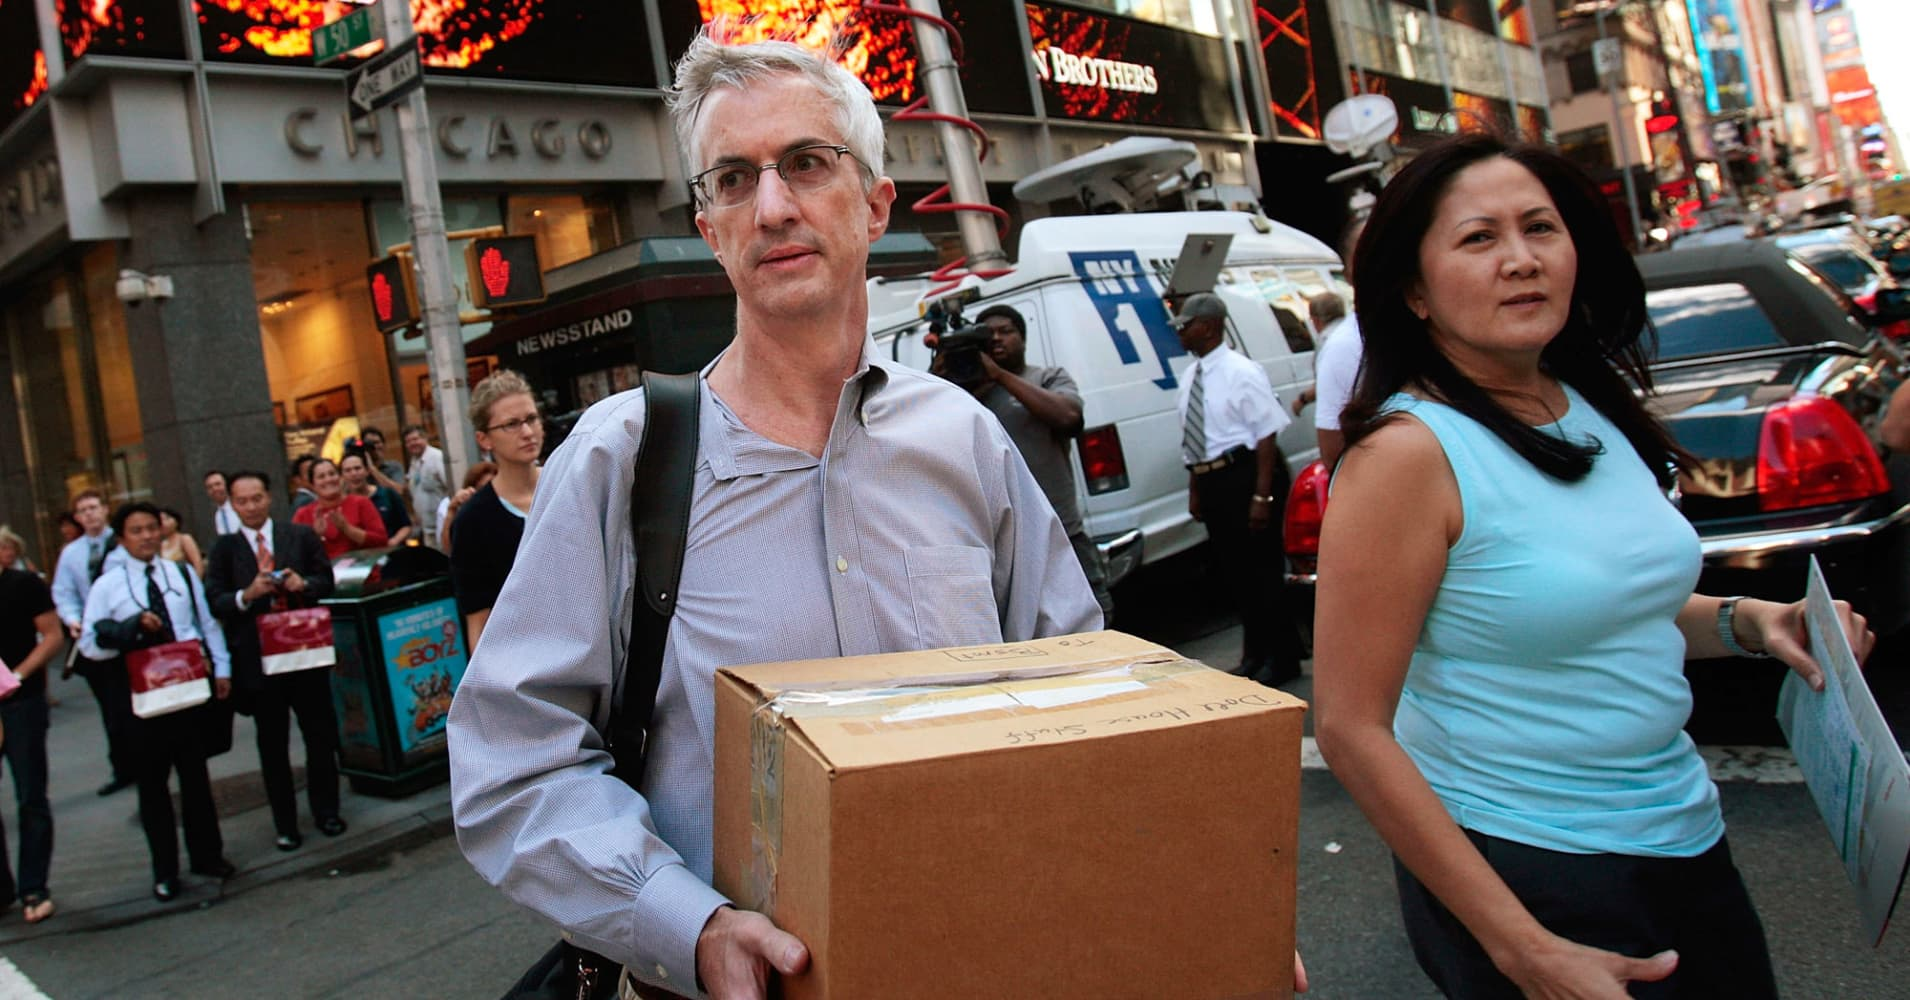 An employee of Lehman Brothers Holdings carries a box out of the company's headquarters building (background) September 15, 2008 in New York City. Lehman Brothers filed a Chapter 11 bankruptcy petition in U.S. Bankruptcy Court after attempts to rescue the storied financial firm failed.